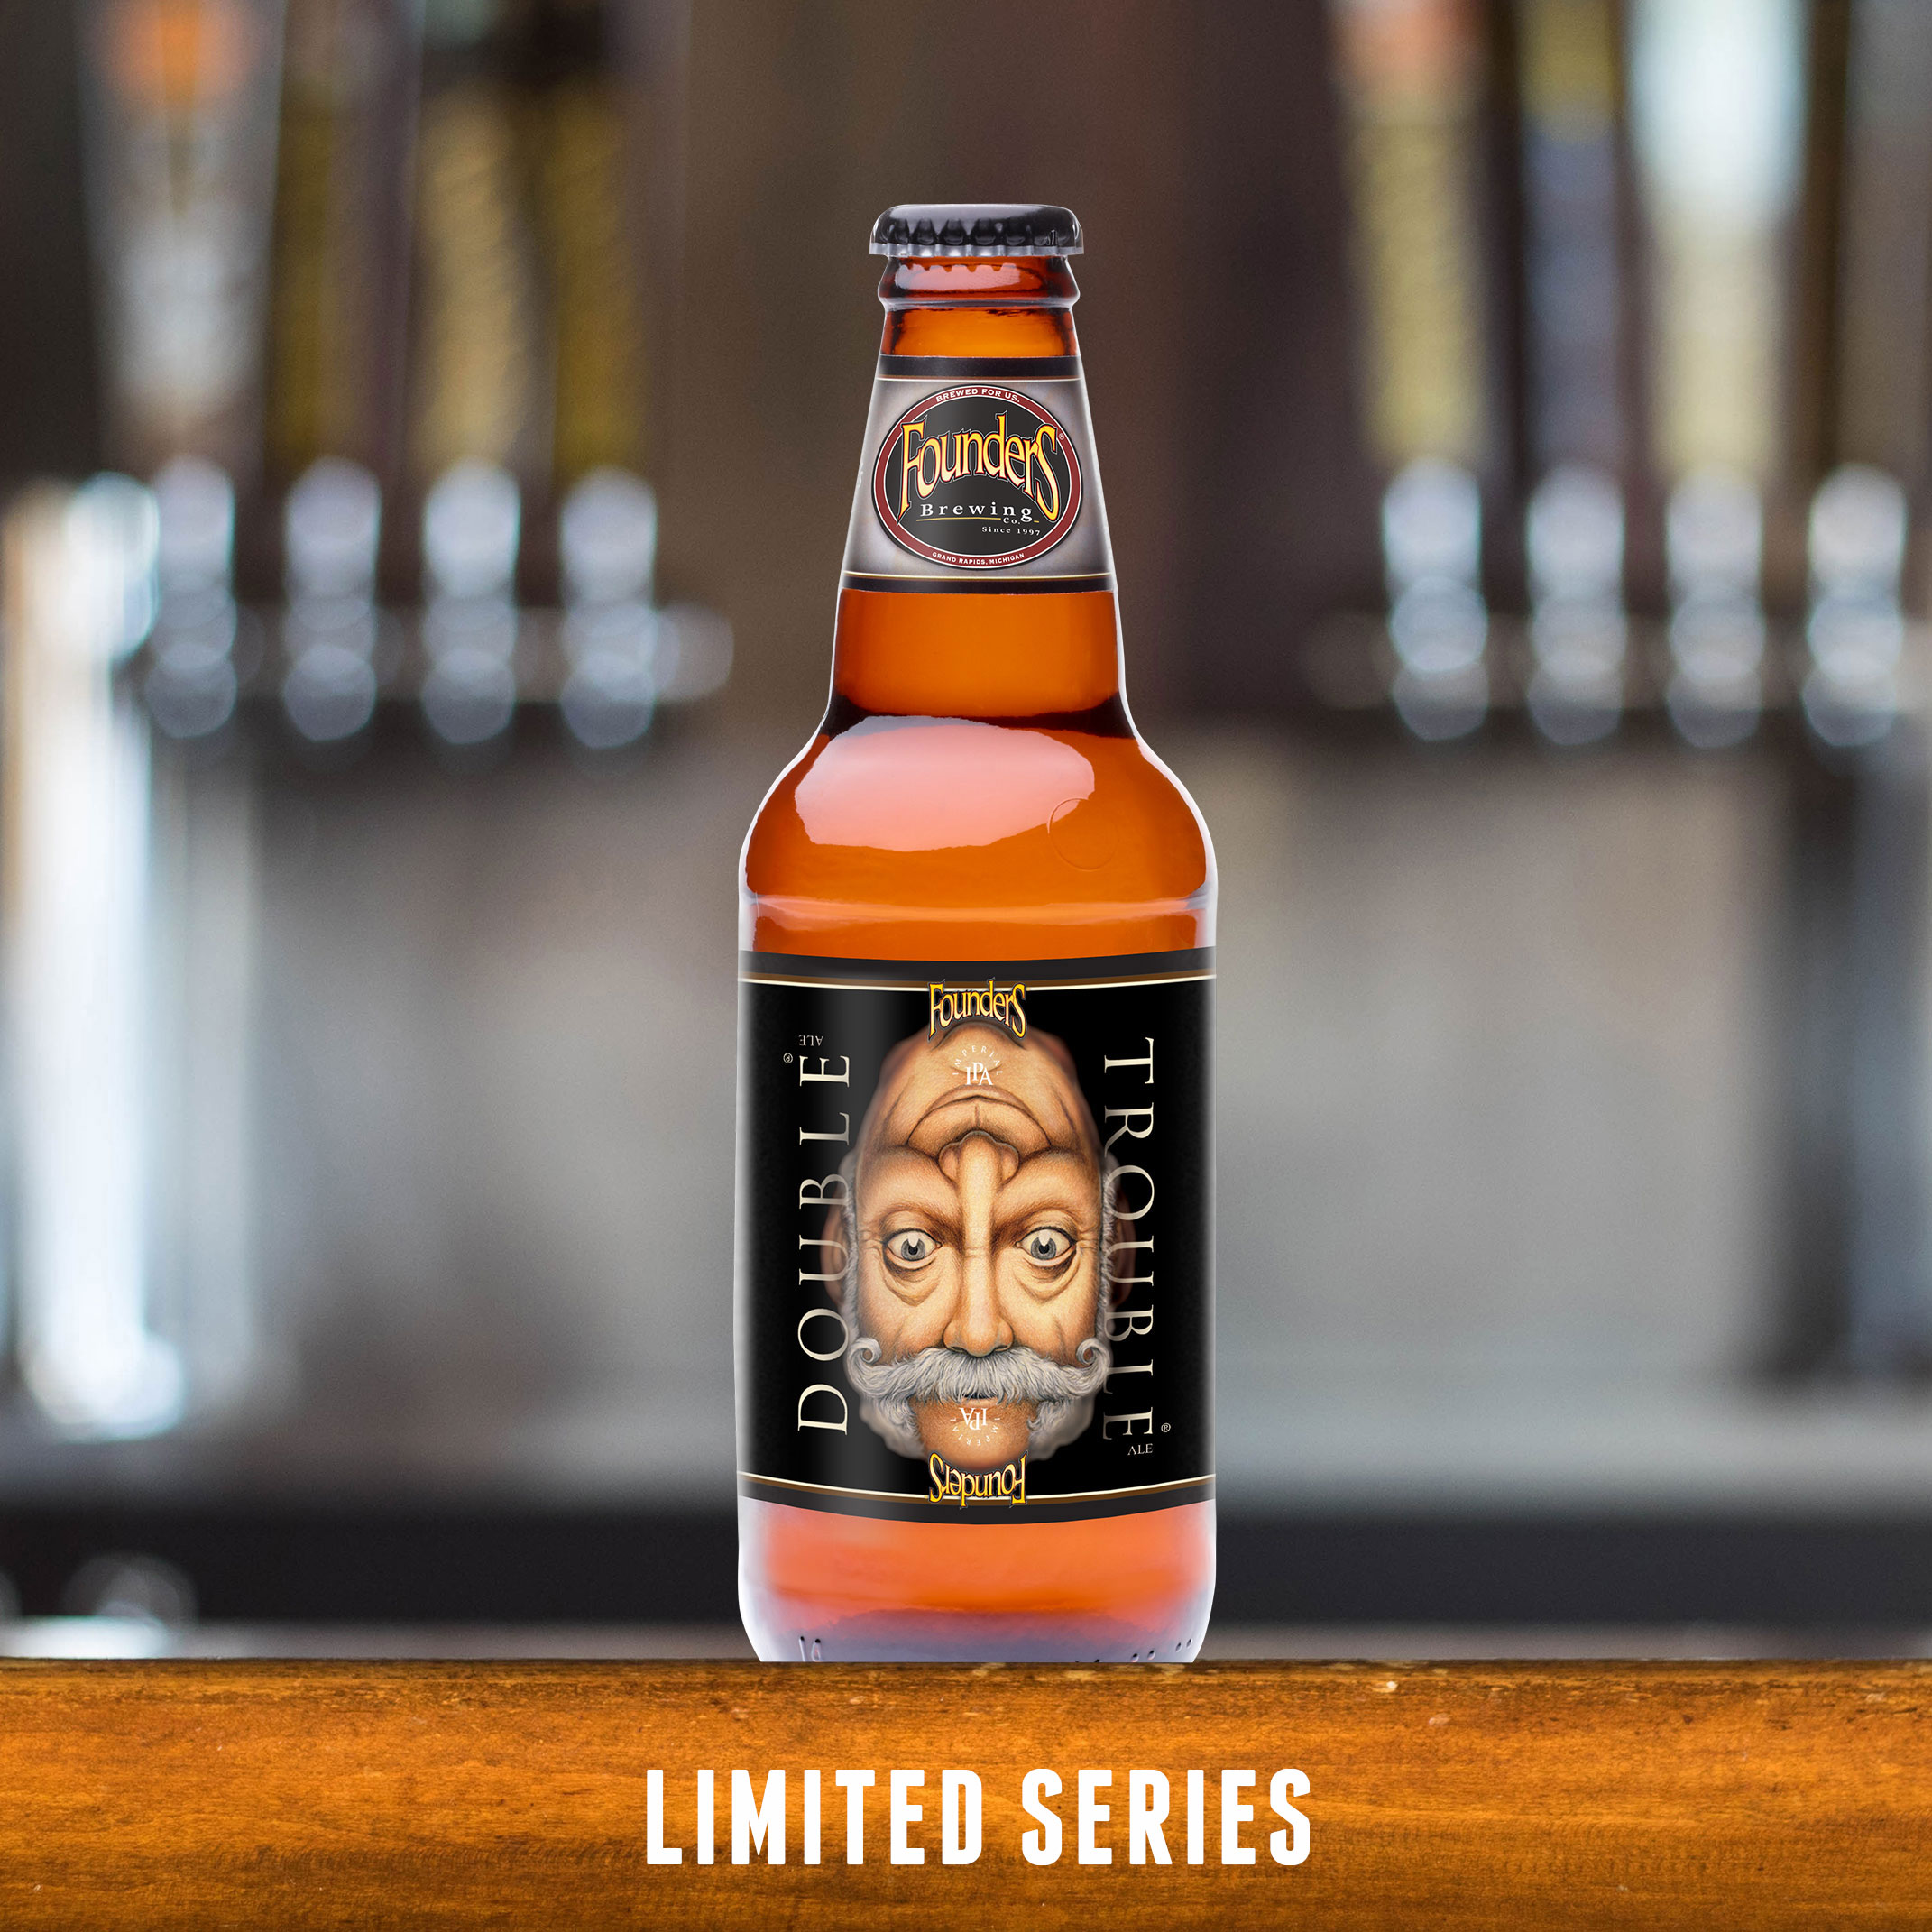 Founders Double Trouble limited series bottle